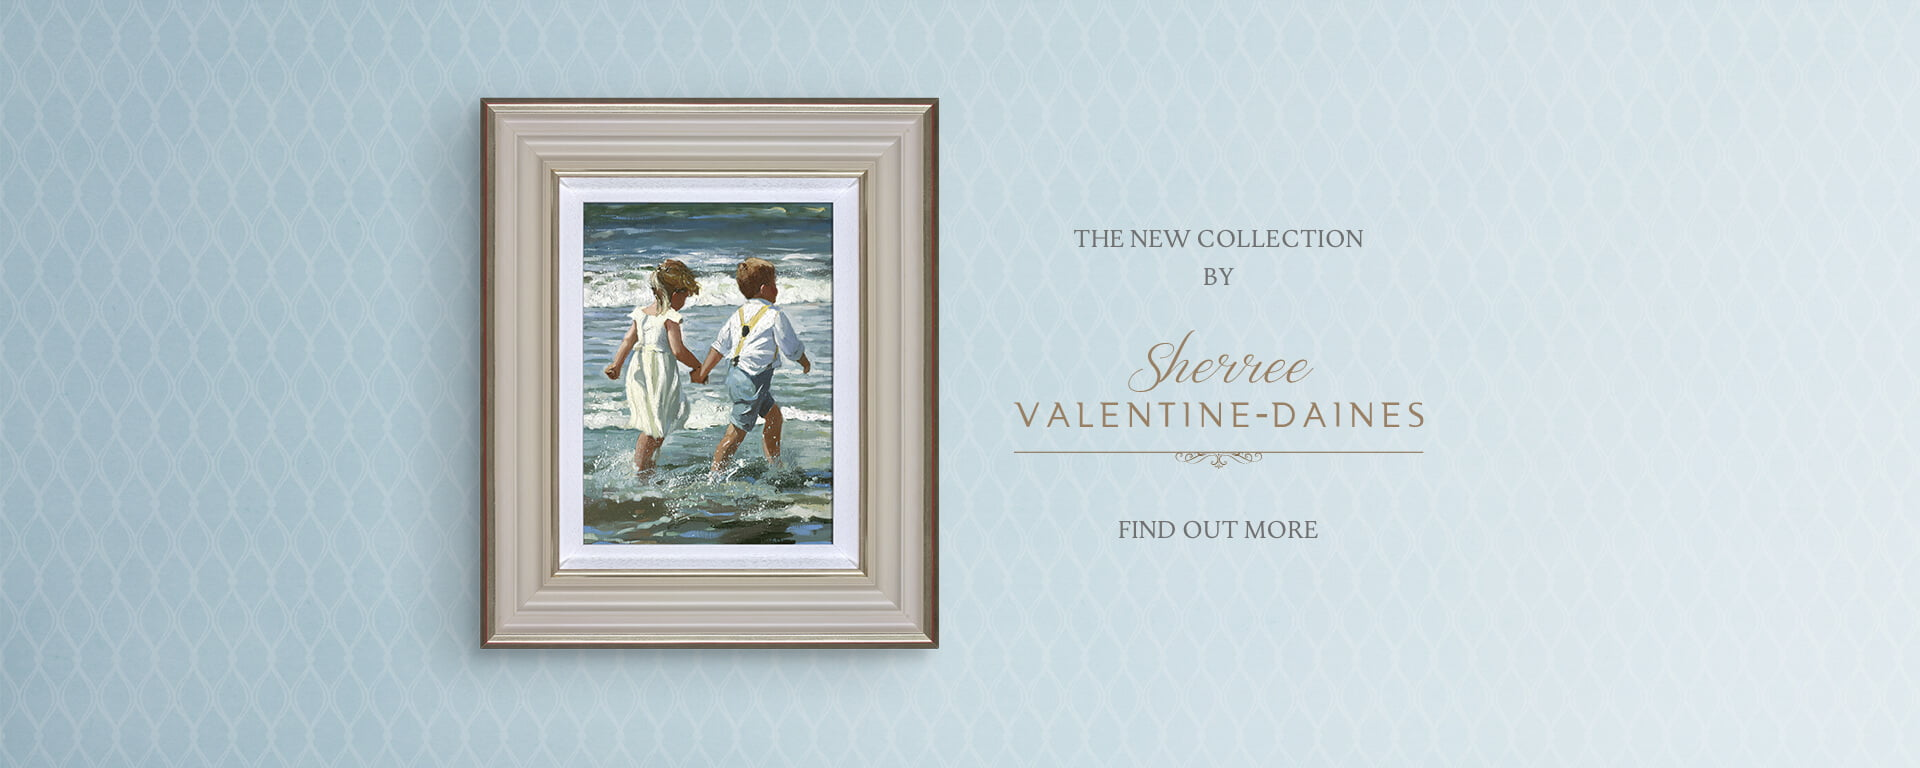 Sherree Valentine Daines | New Releases